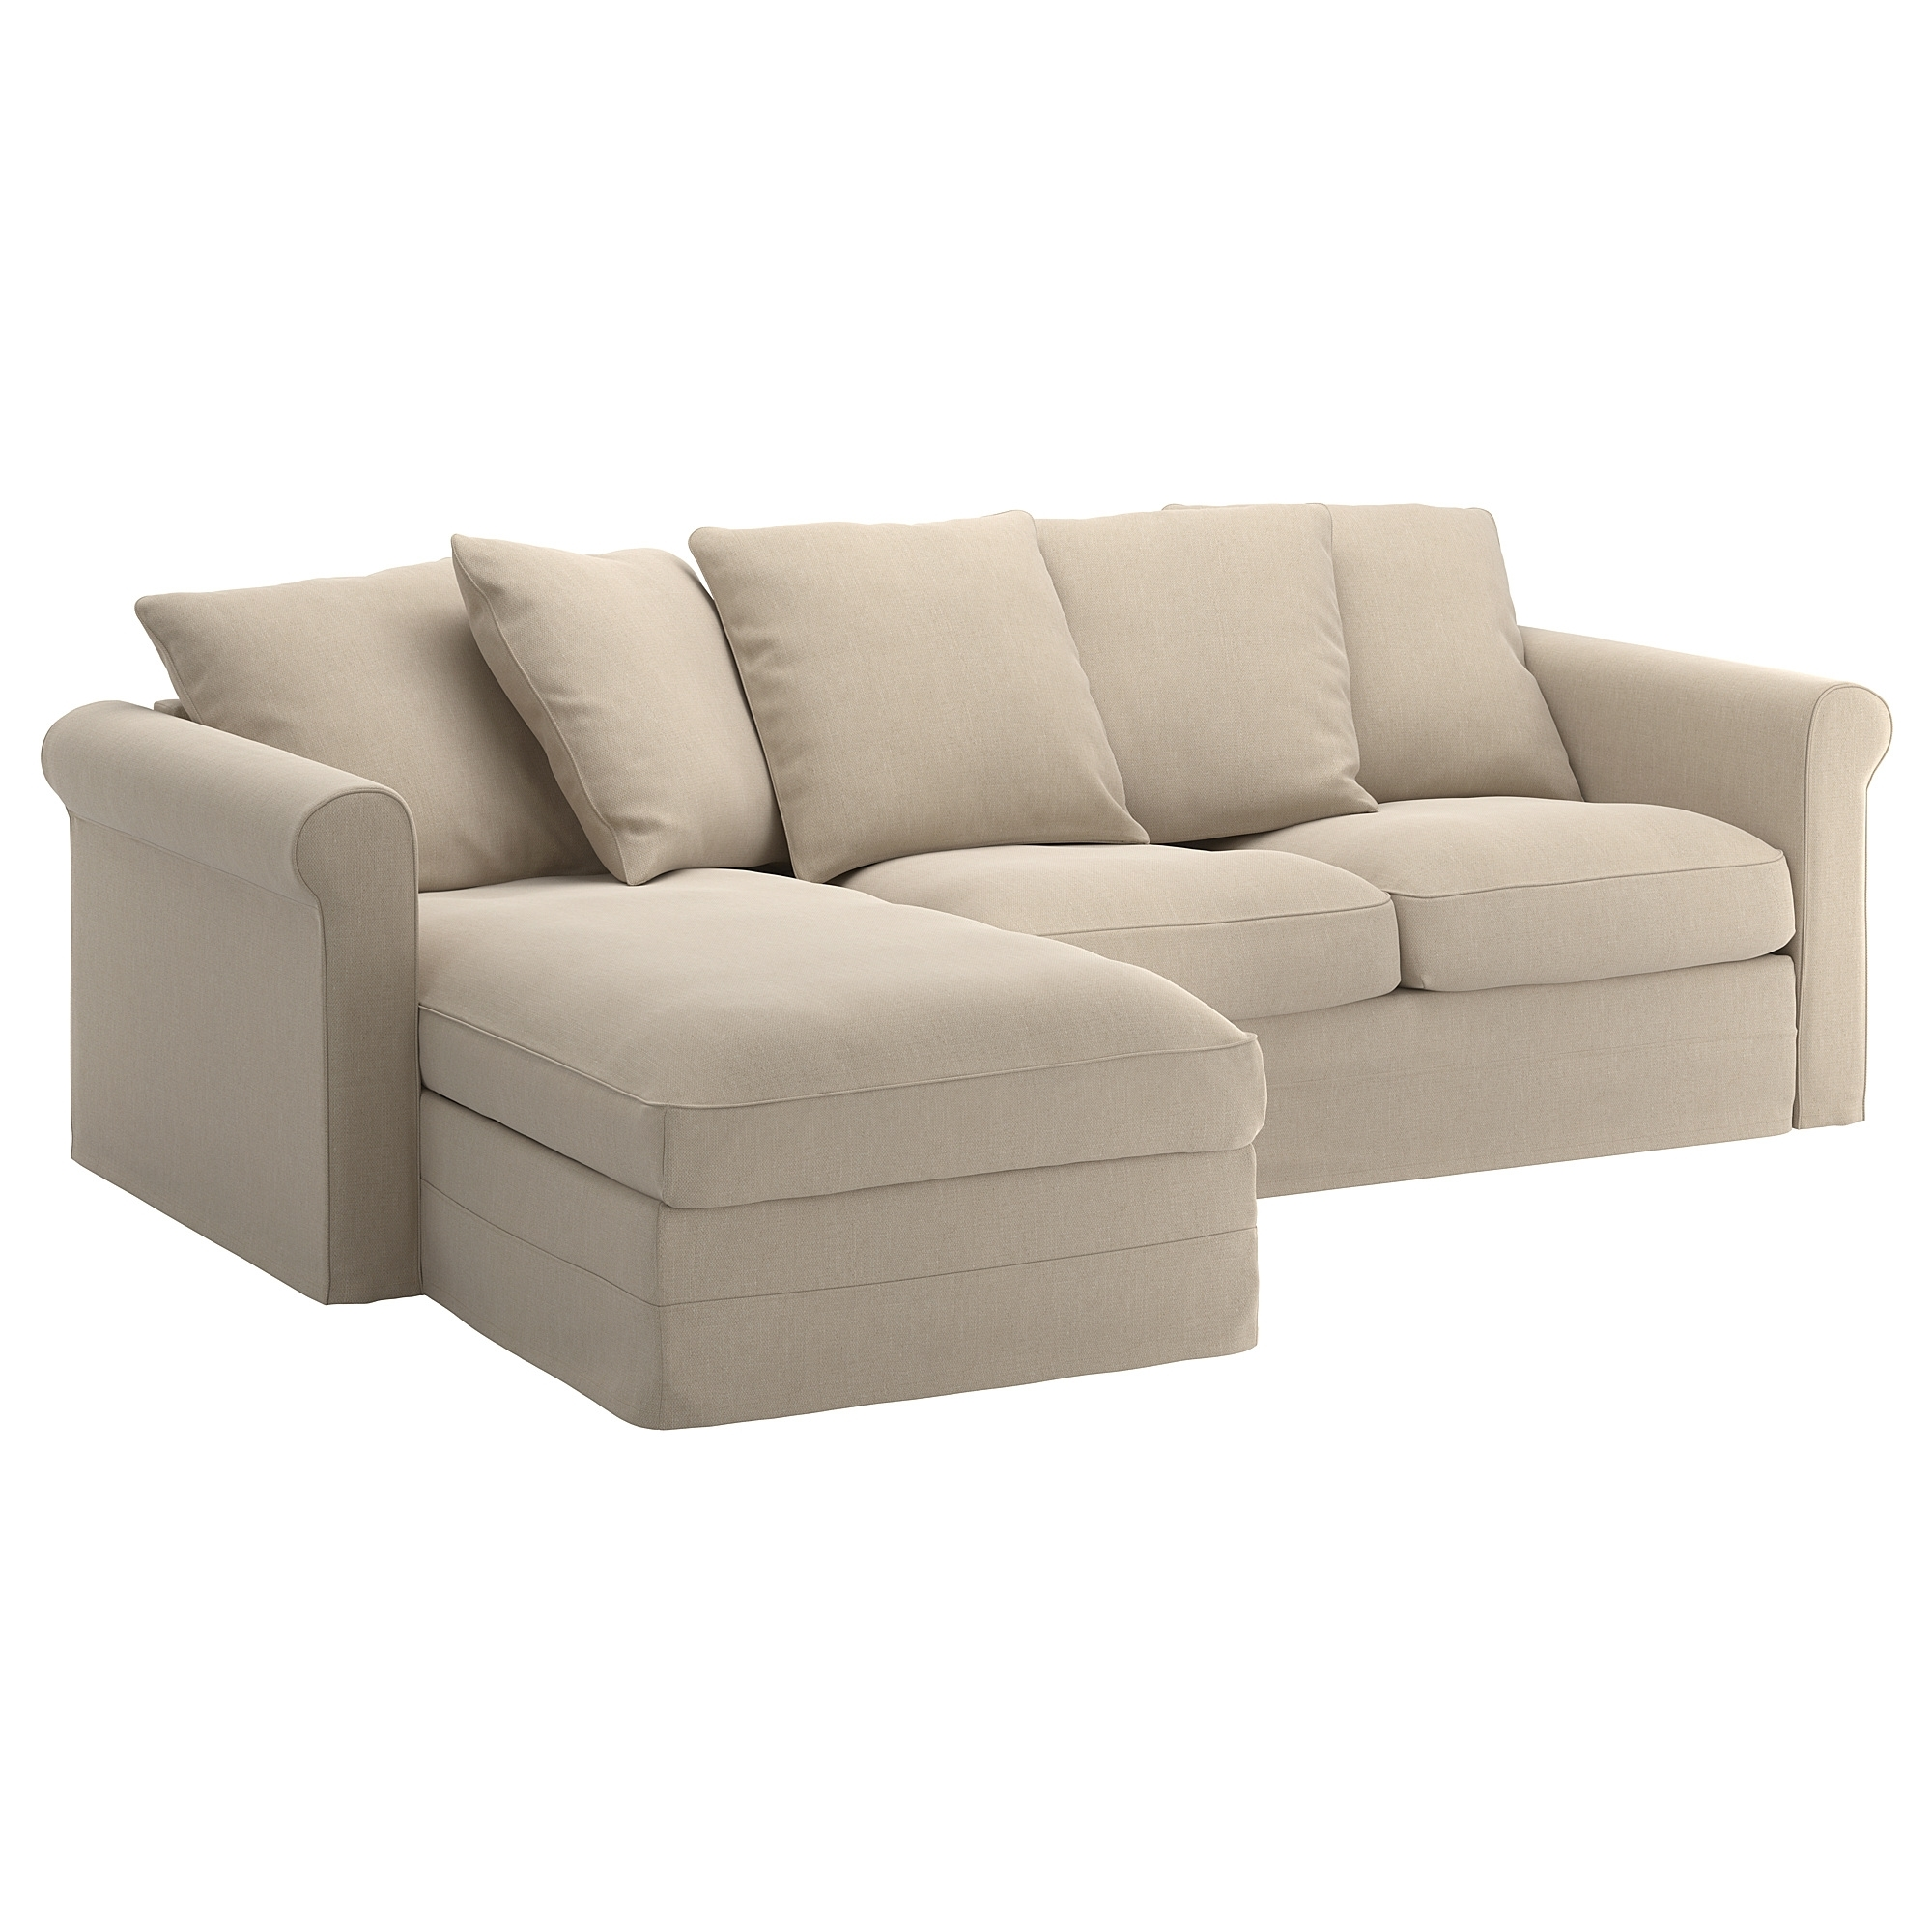 Sofa : 3 Seater Sofa Revit 3 Seater Sofa Removable Covers 3 Seater Intended For Newest Removable Covers Sectional Sofas (View 15 of 15)